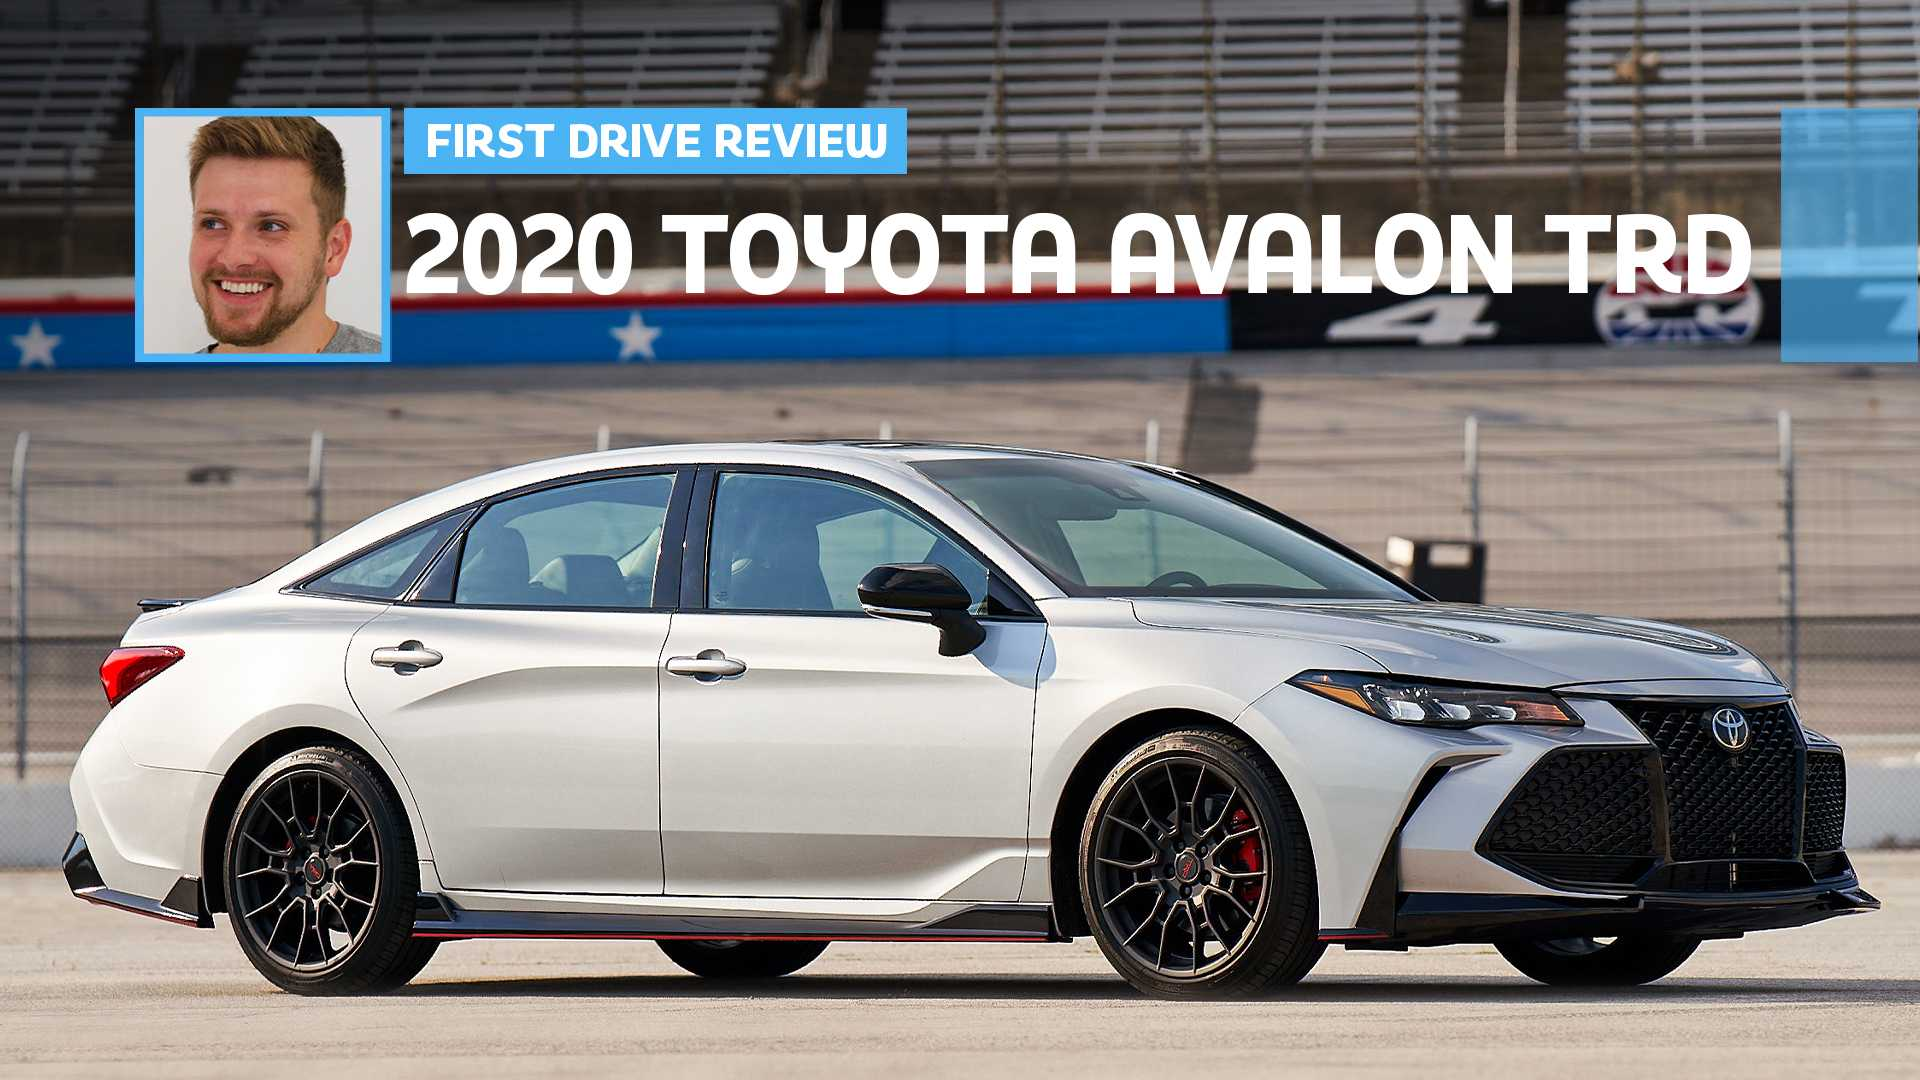 2020 Toyota Avalon Review.2020 Toyota Avalon Trd First Drive Fun Infusion